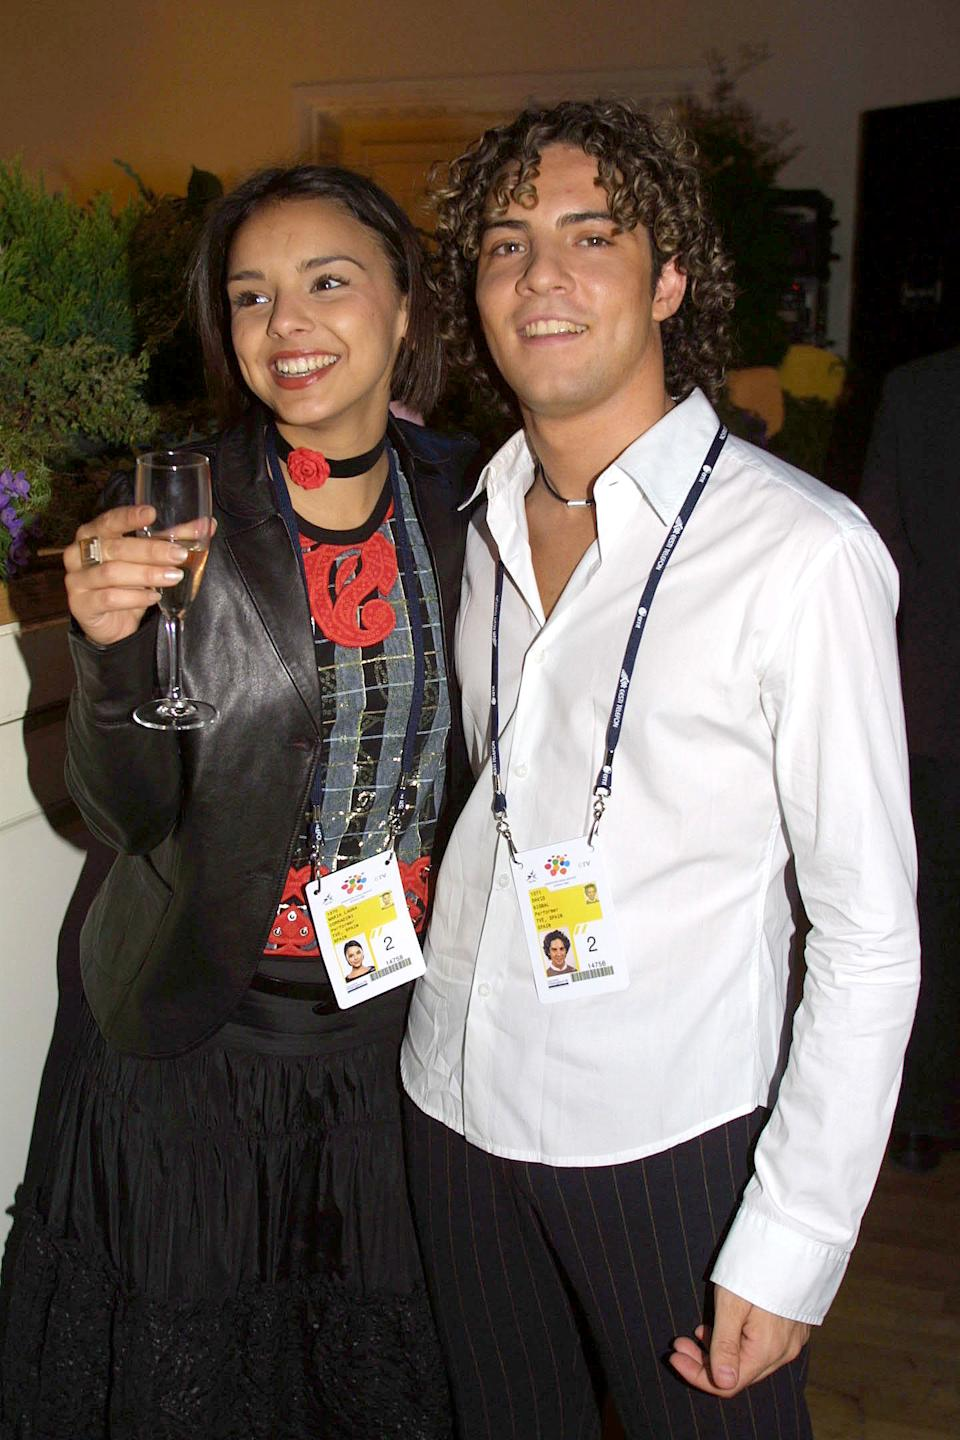 20.05.2002. Estonia. Tallin. David Bisbal and Chenoa enjoy the reception offered by the Mayor of Tallin all the participants of the Festival.  (Photo by Quim Llenas/Cover/Getty Images)